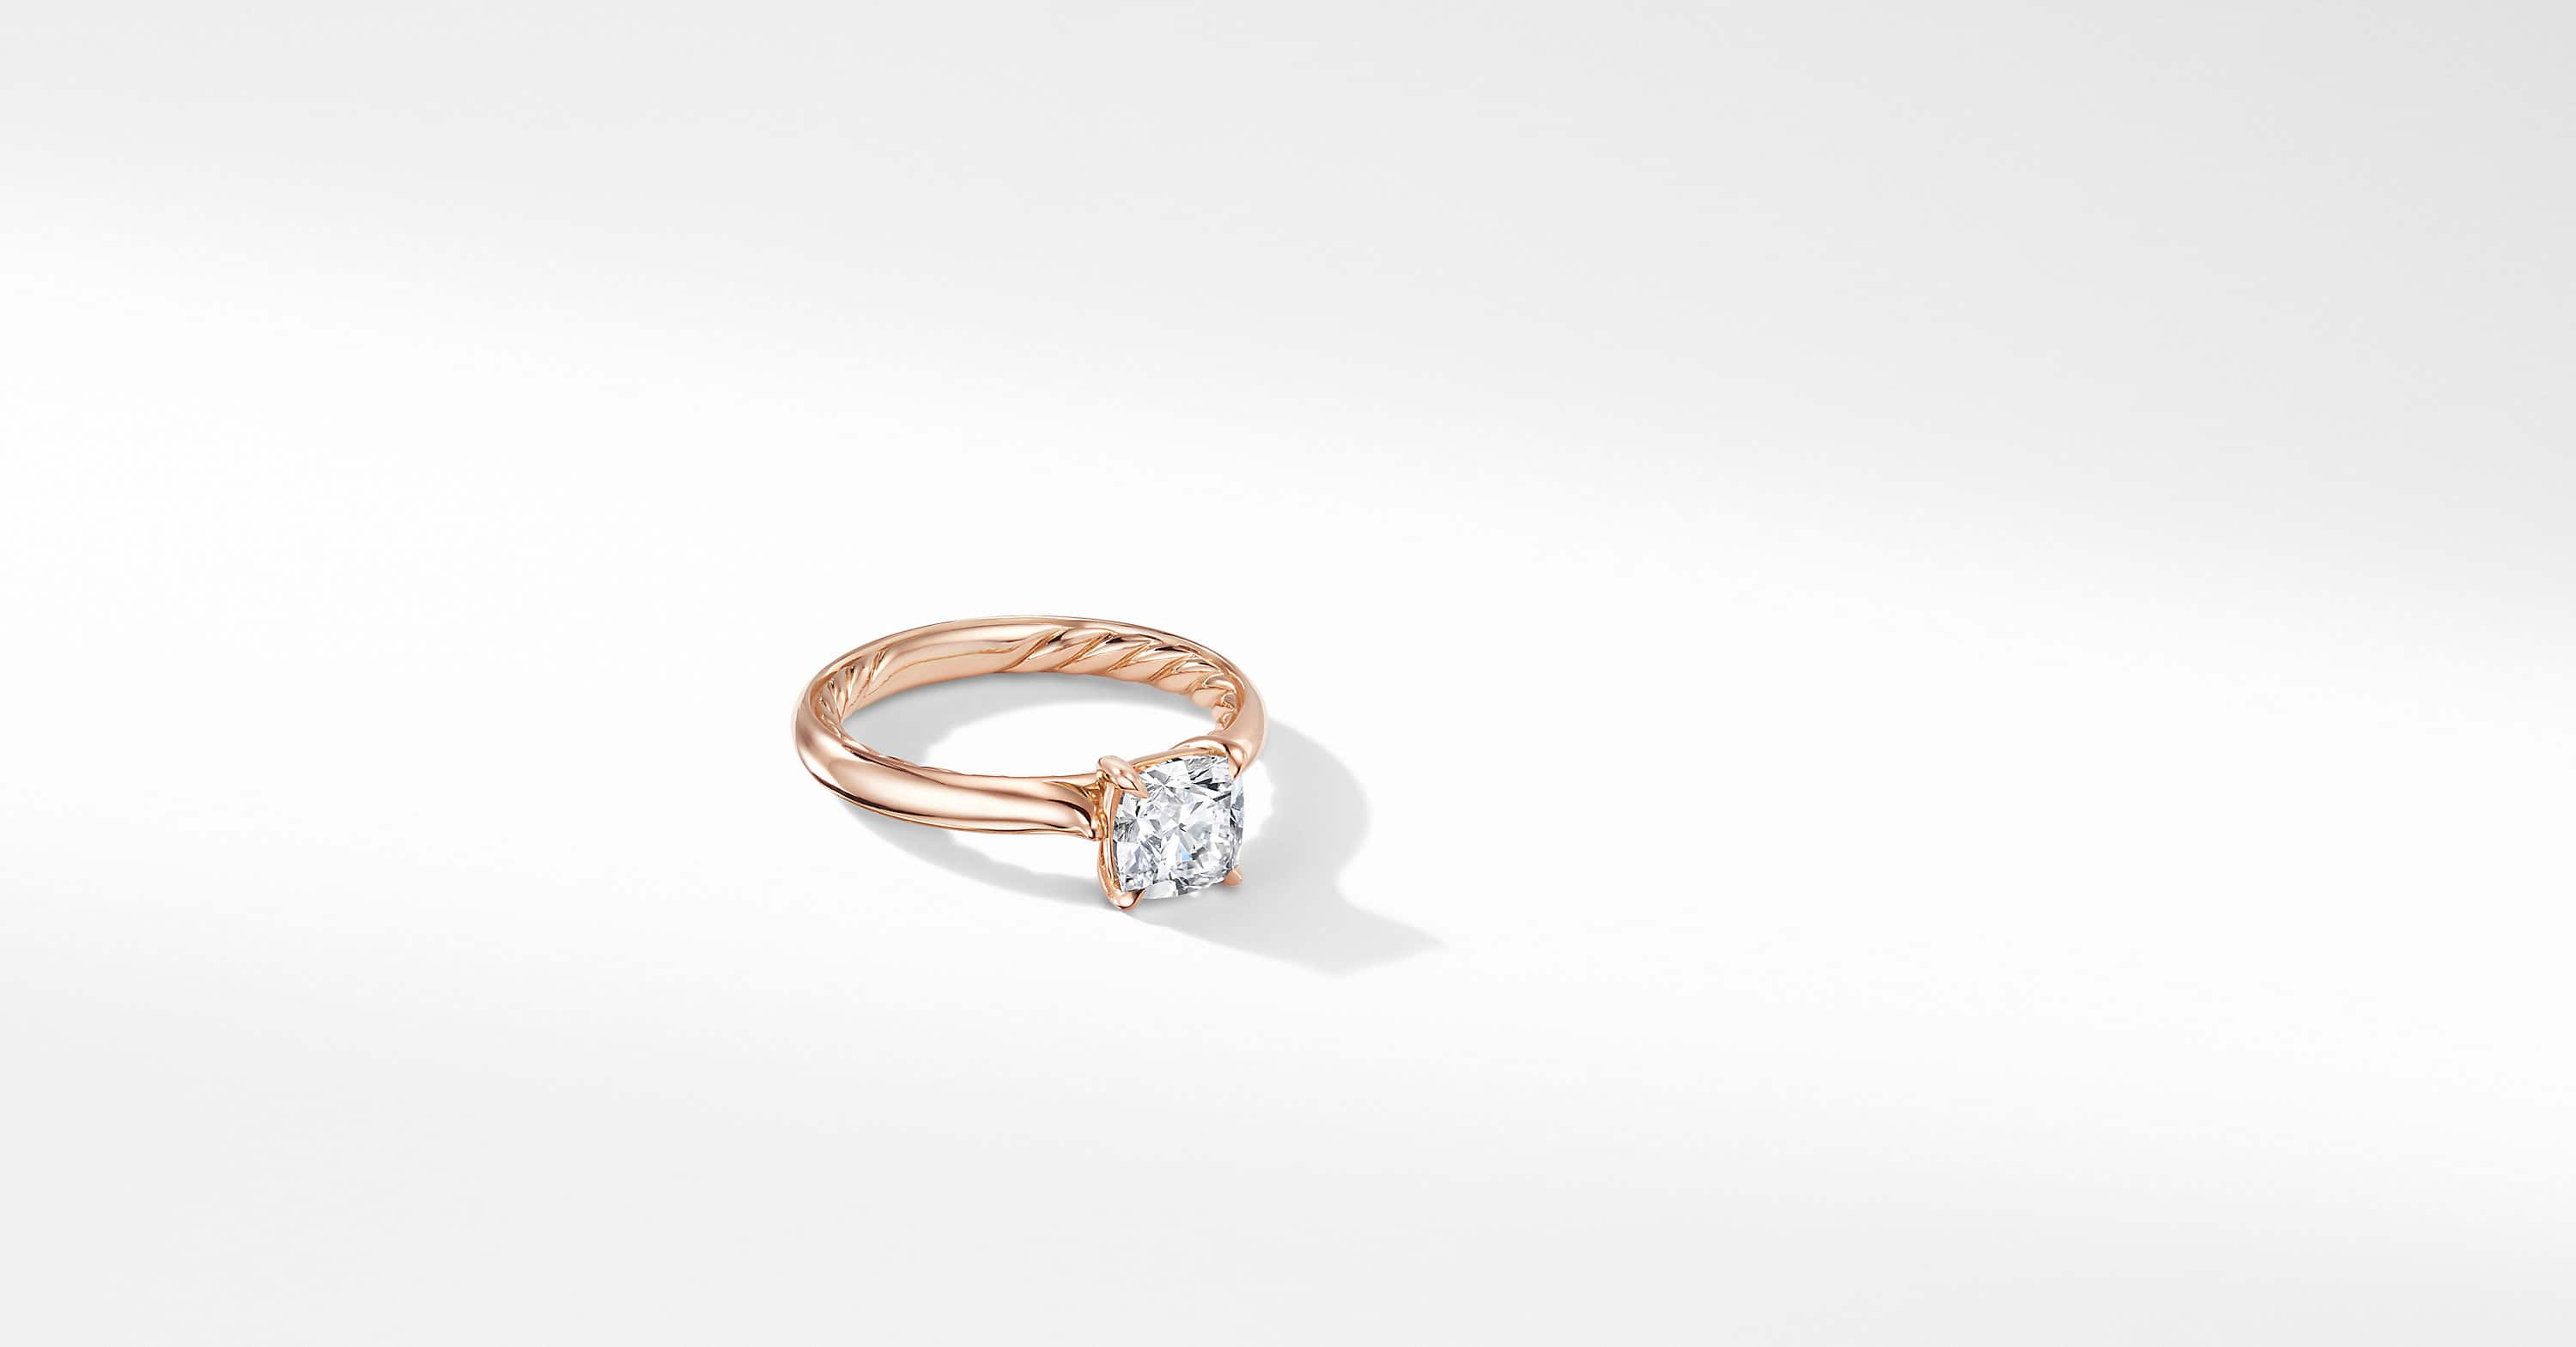 DY Eden Engagement Ring in 18K Rose Gold, Cushion